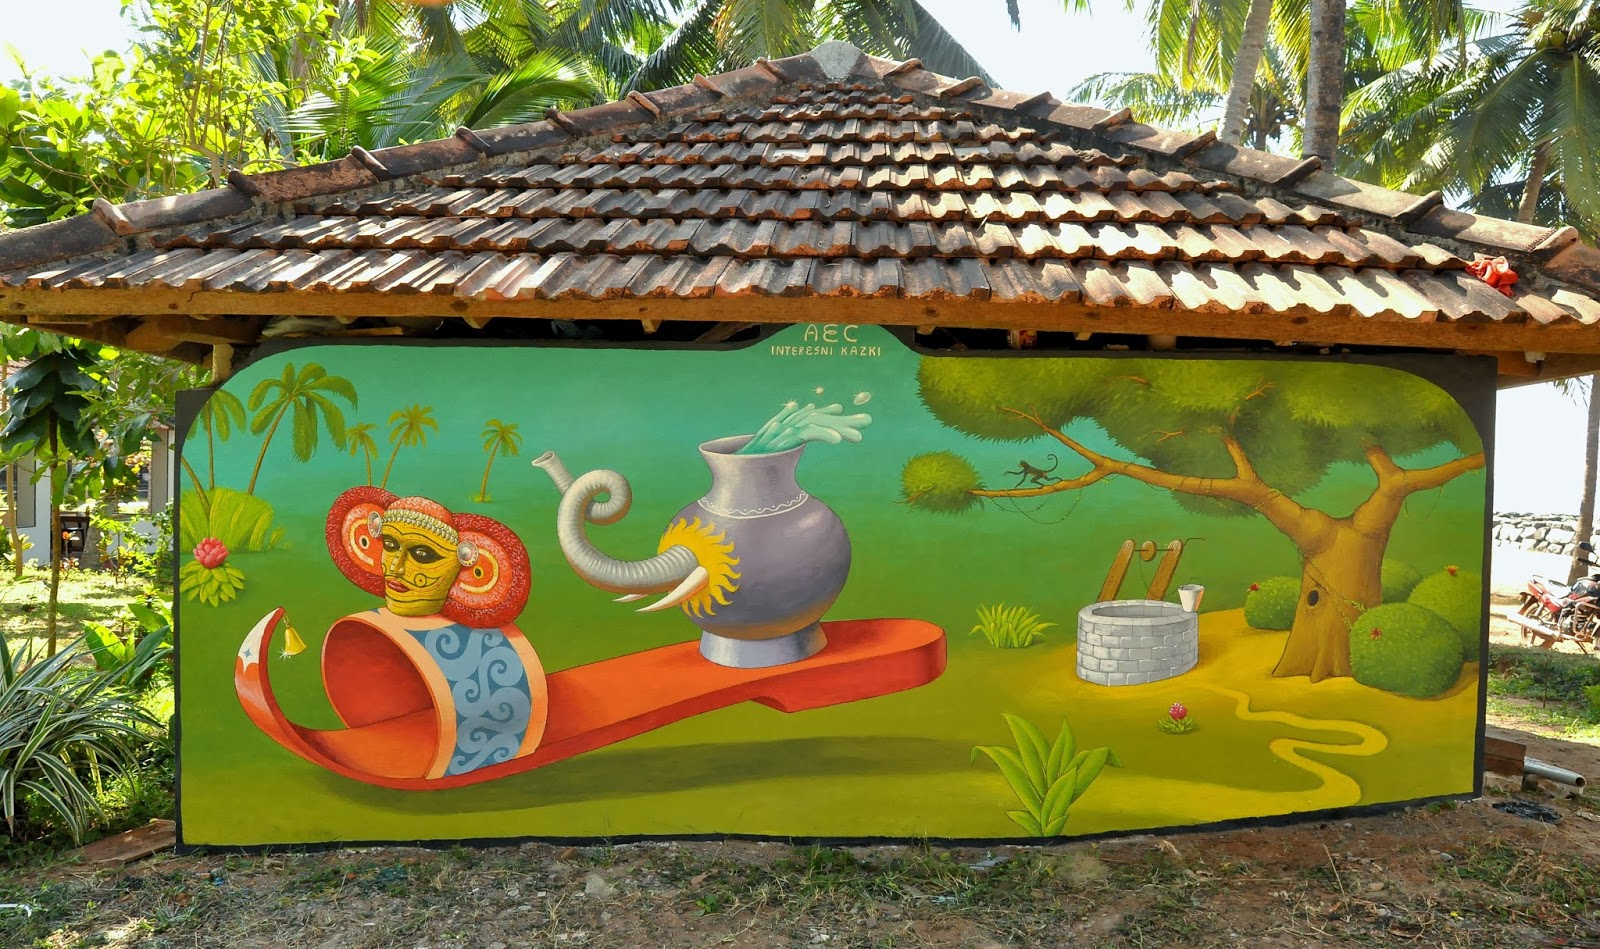 interesni-kazki-holy-slipper-new-mural-in-india-01